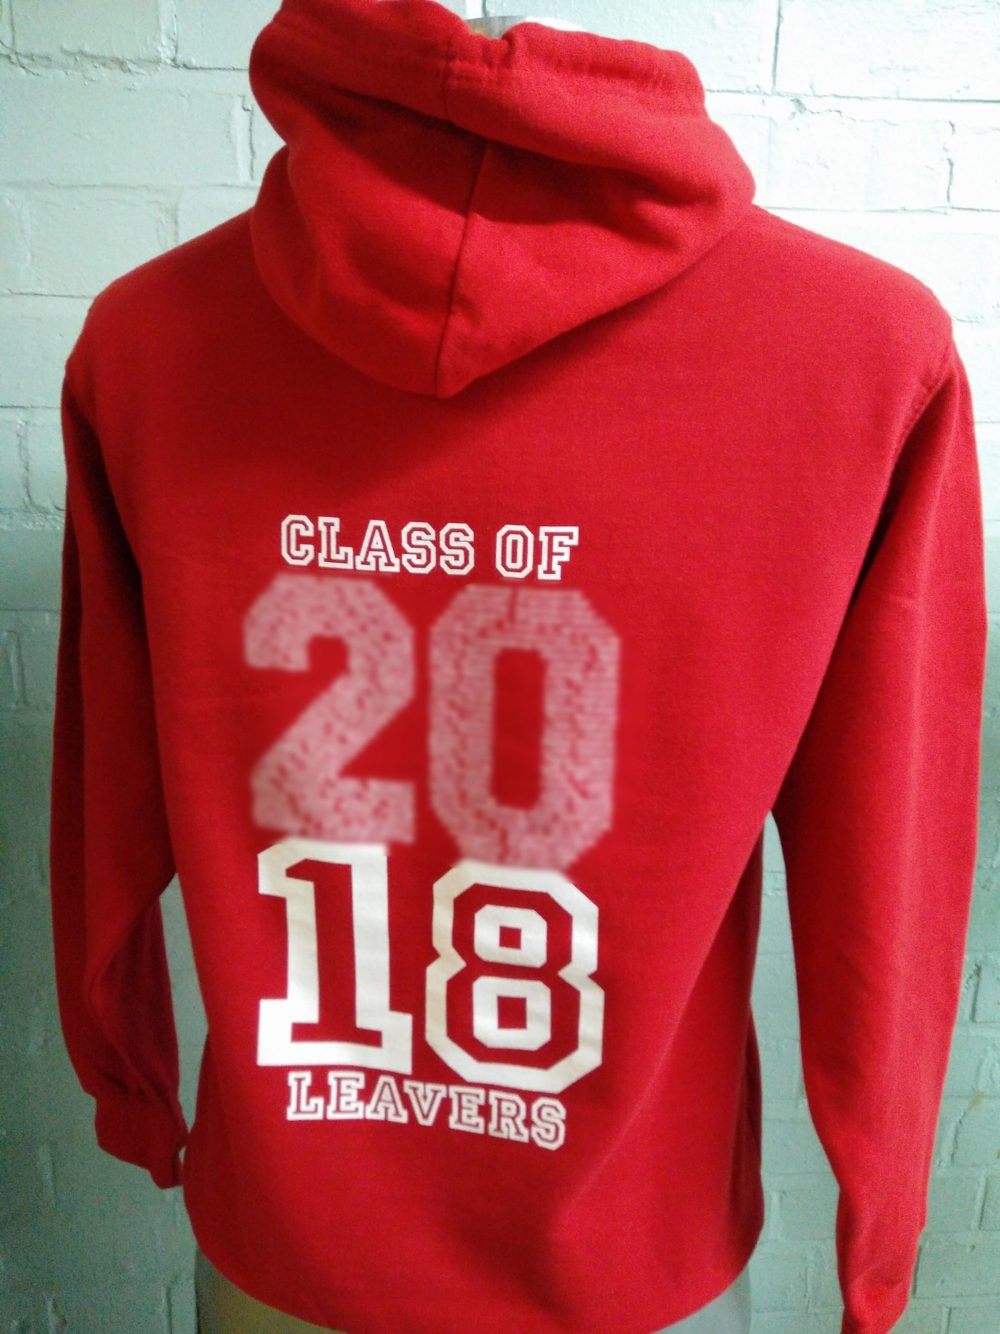 Bestwood Village Primary Leavers Hoodies